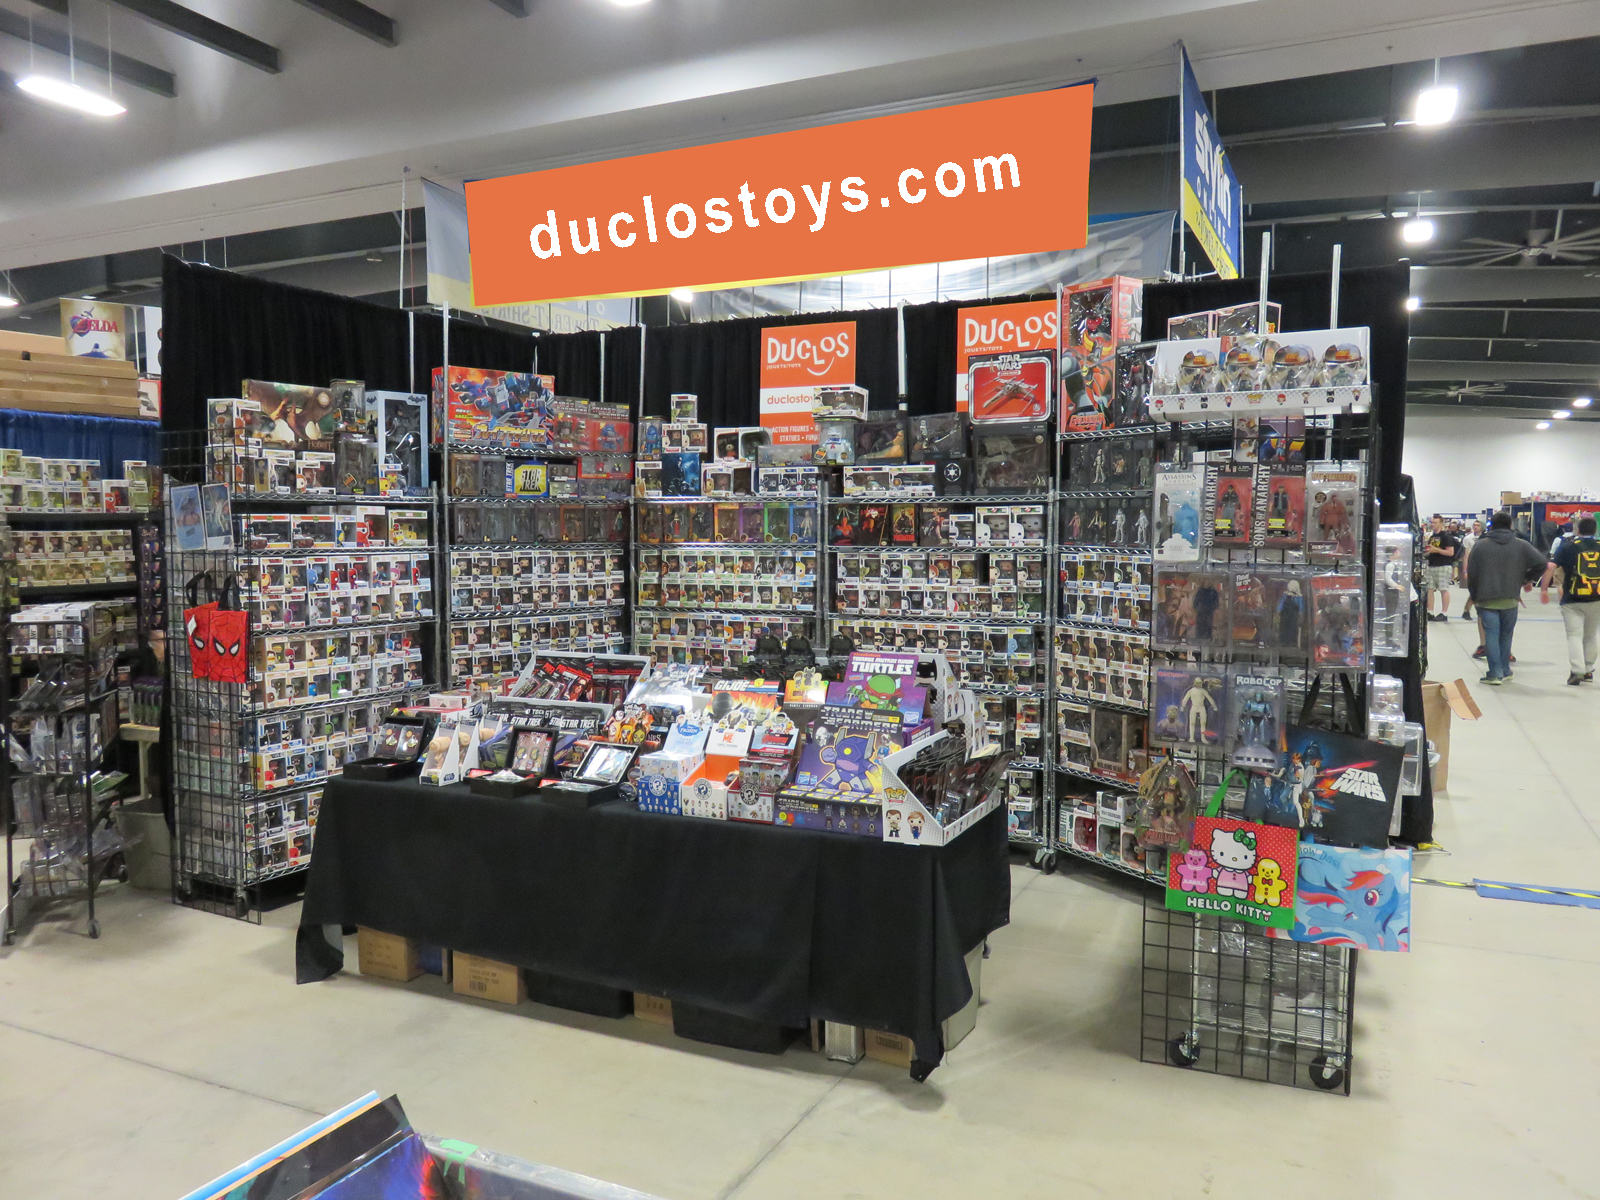 Ottawa Store Duclos Toys Action Figures Collectibles Geek Toys